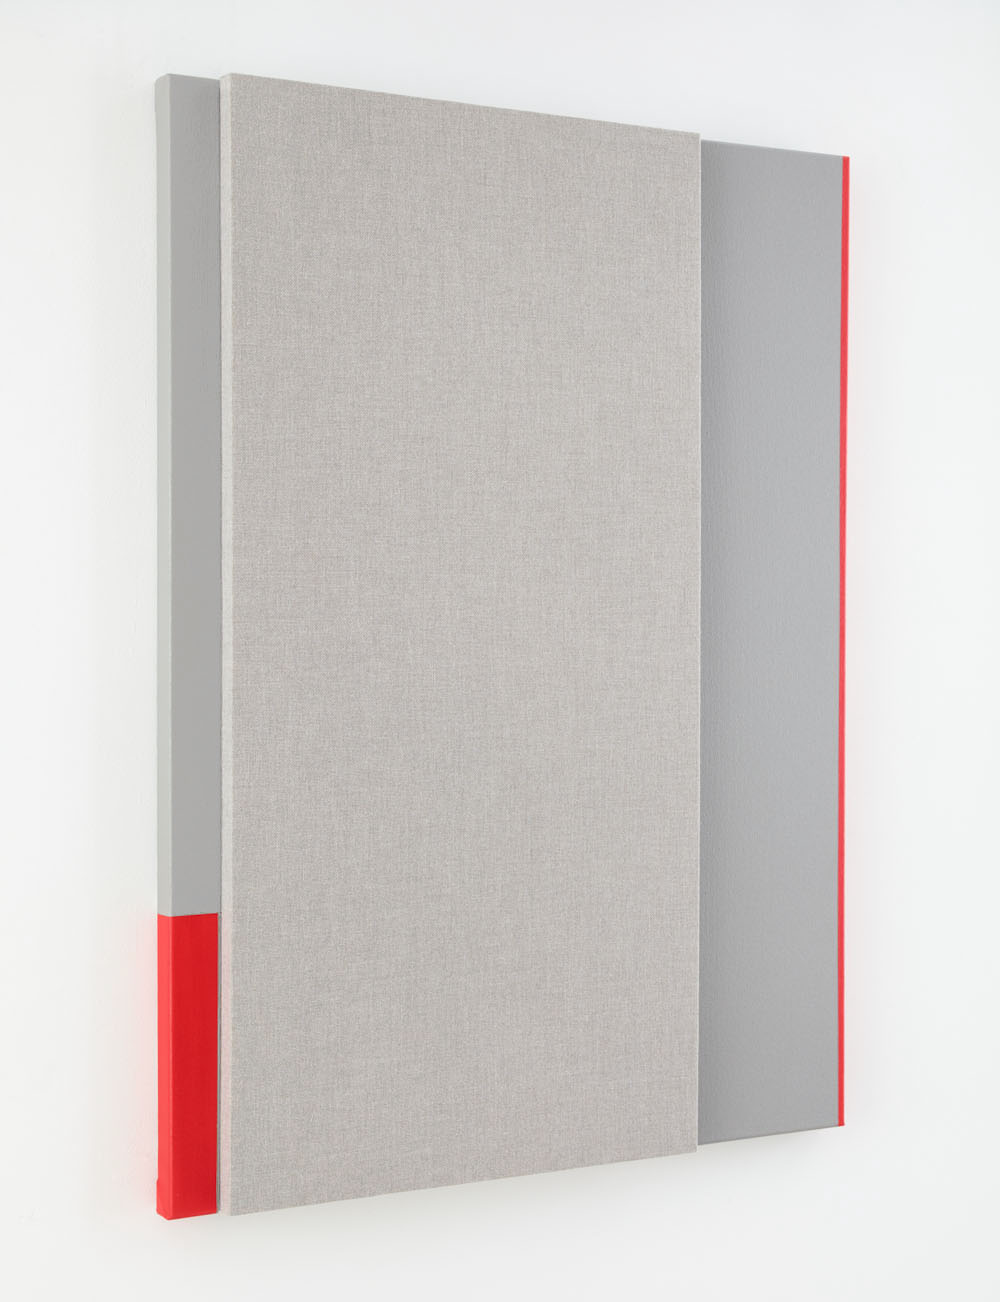 Quiet Gray with ¾ Red Reverberation --Acoustic absorber panel and acrylic paint on canvas 48 x 36 inches, 2014 : Collection of Arthur Lewis